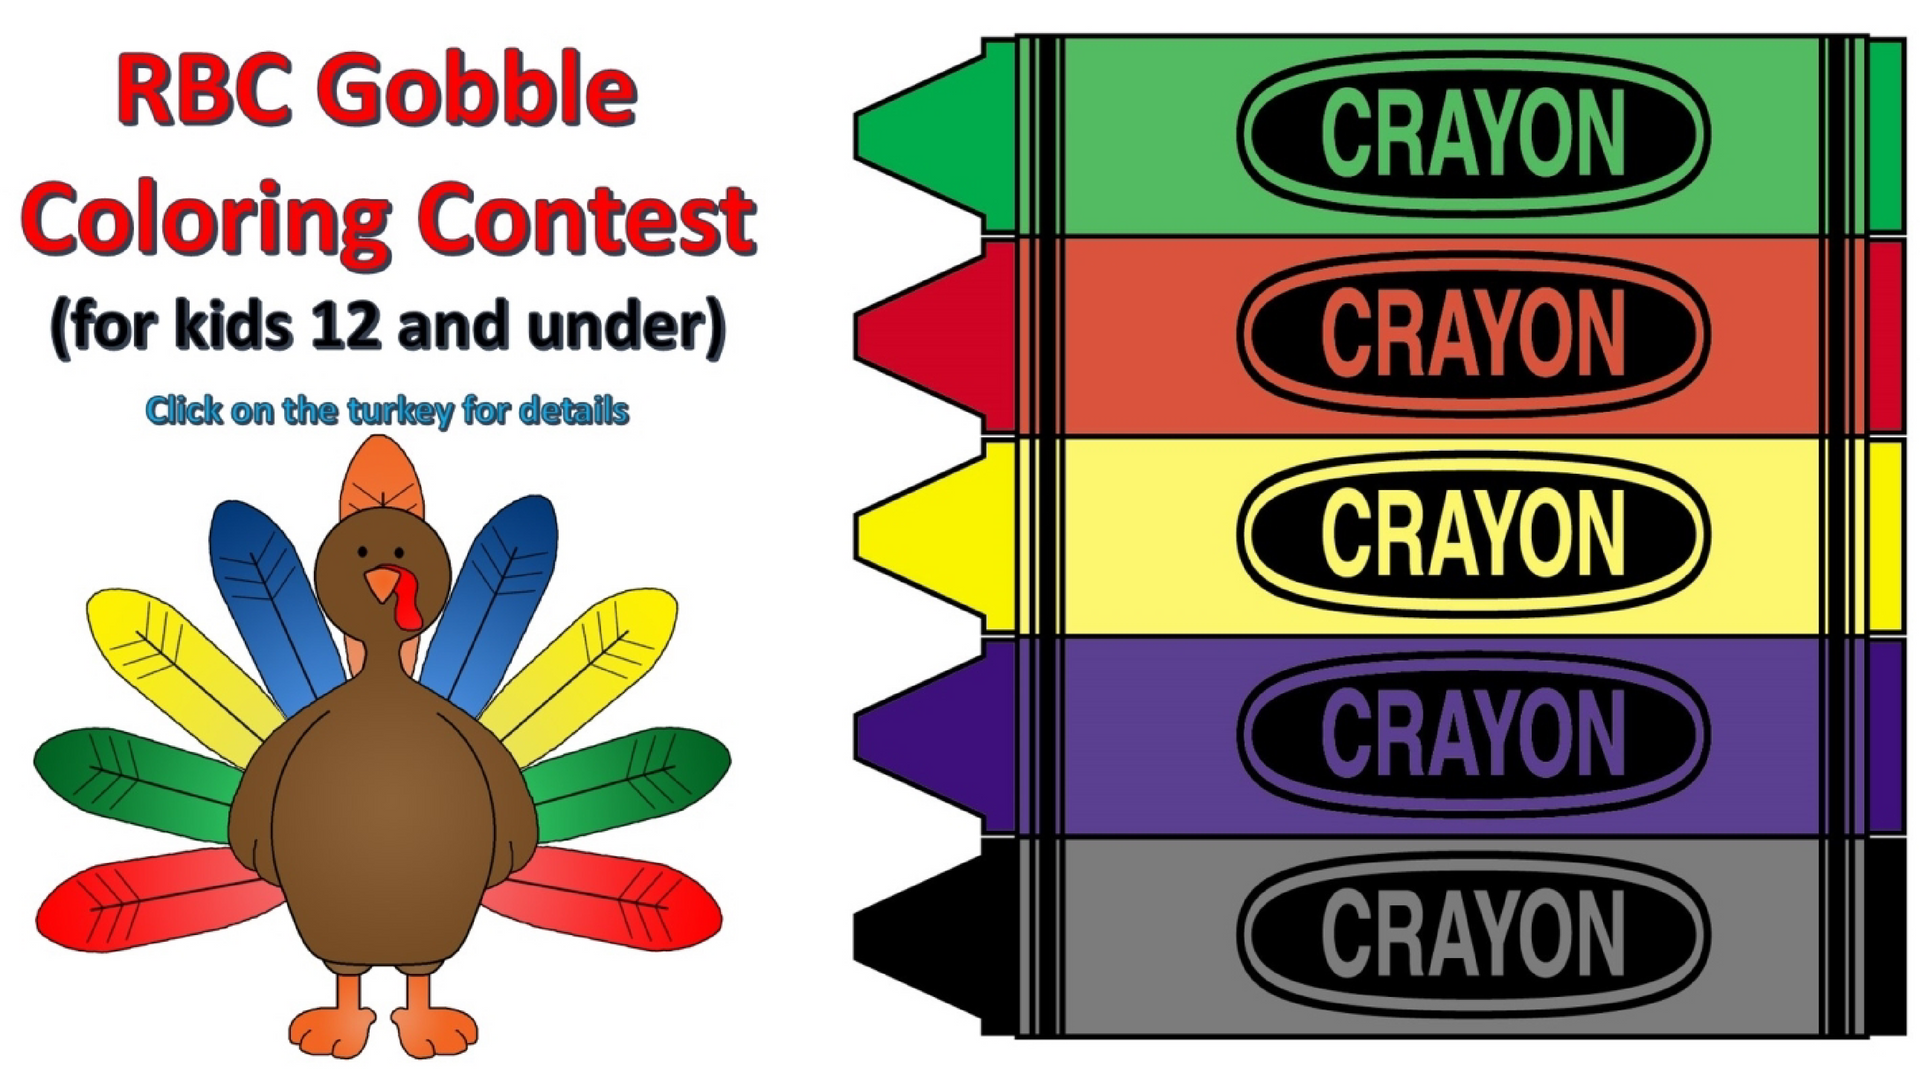 Gobble Coloring Contest